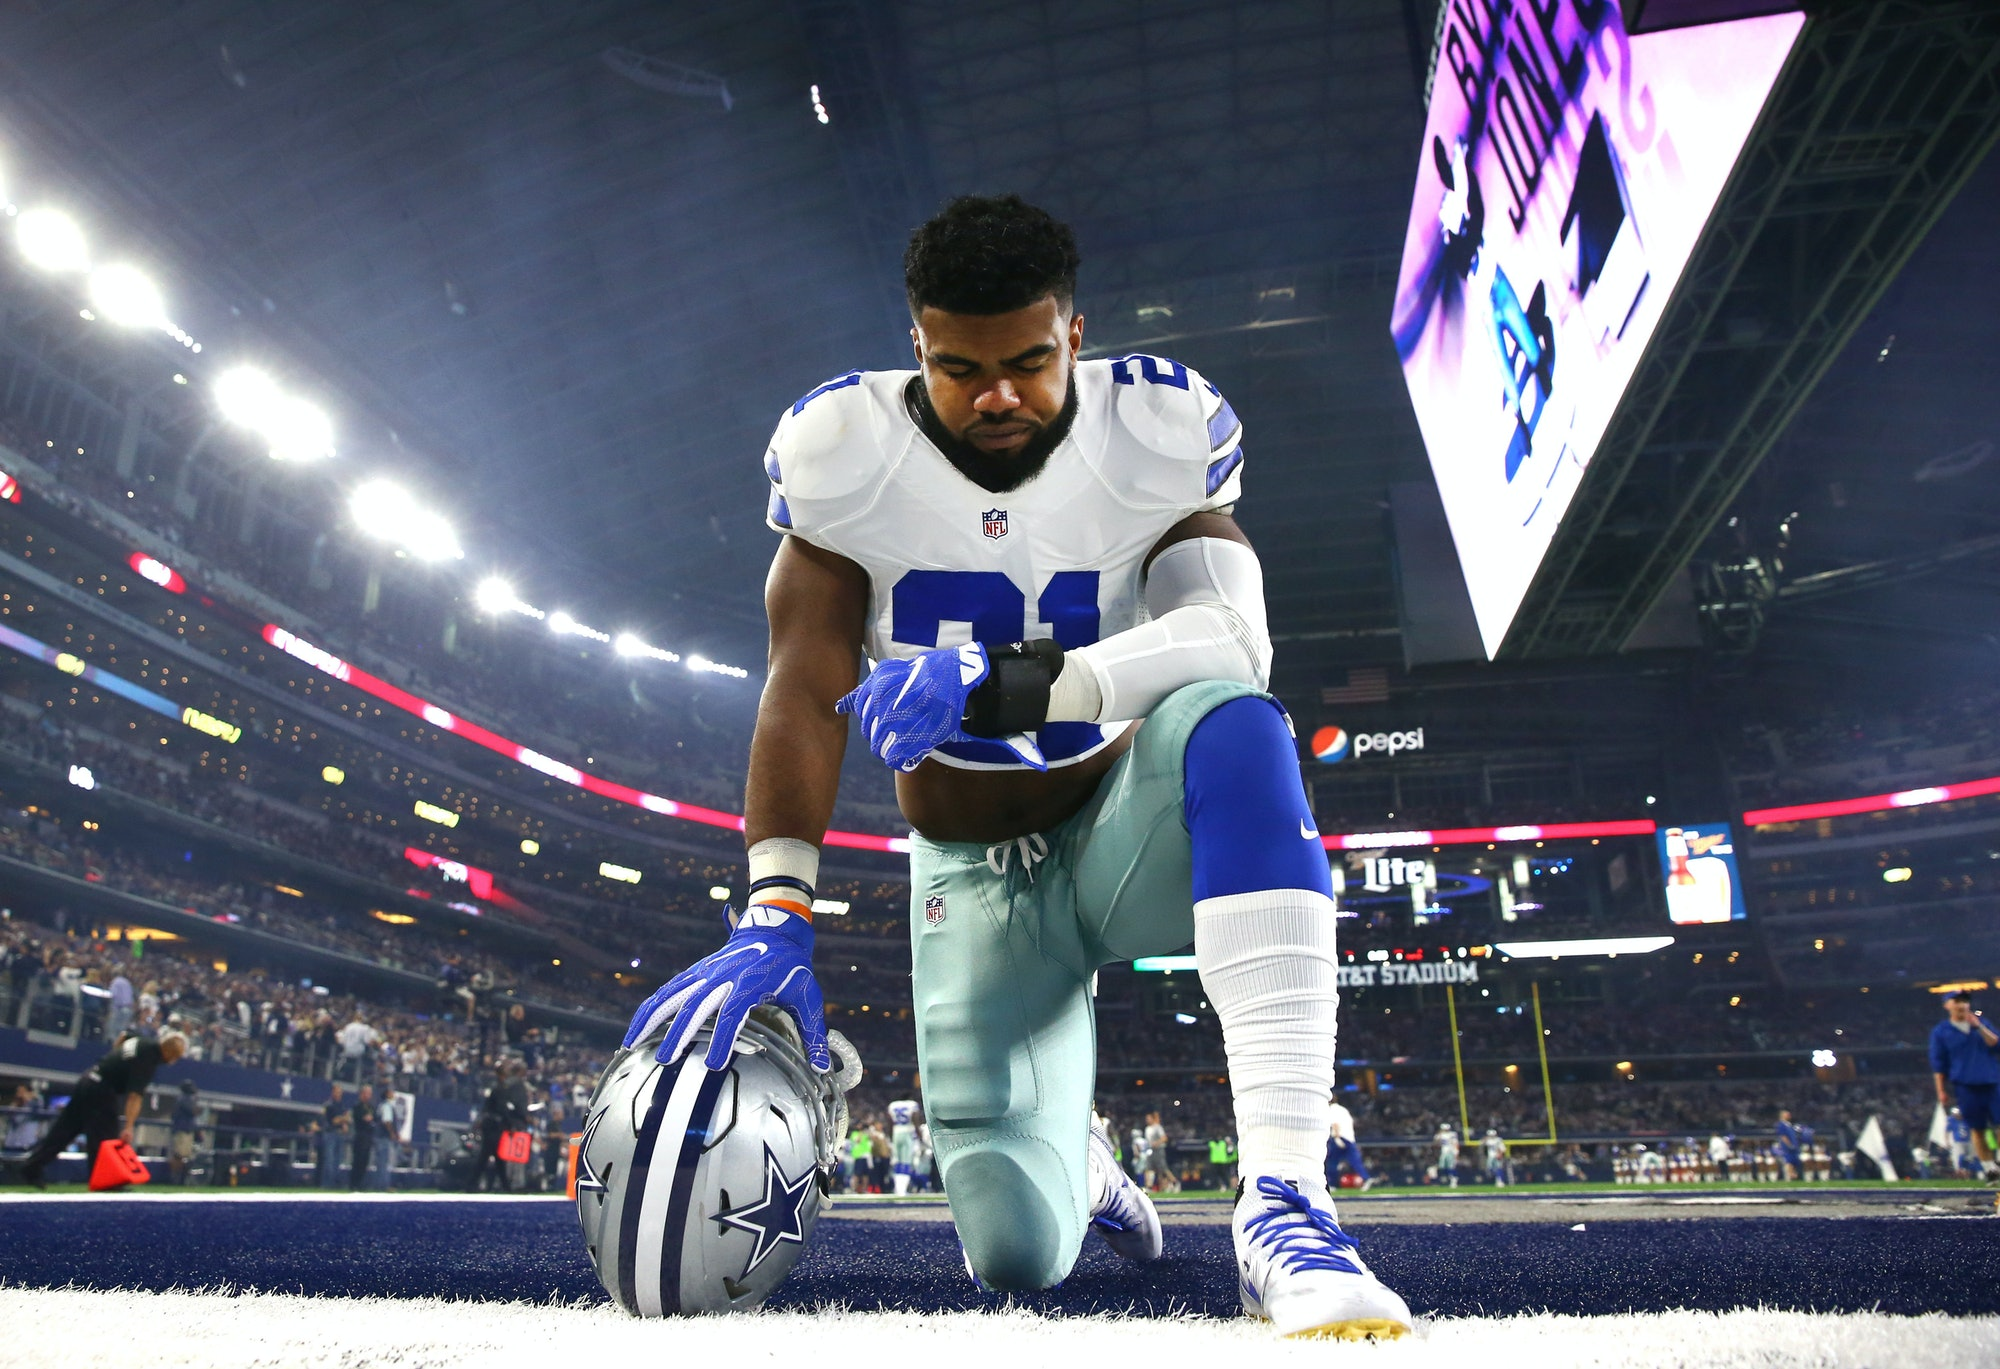 ARLINGTON, TX - DECEMBER 26: Ezekiel Elliott #21 of the Dallas Cowboys takes a knee in the end zone before the Cowboys played the Detroit Lions at AT&T Stadium on December 26, 2016 in Arlington, Texas. (Photo by Tom Pennington/Getty Images)